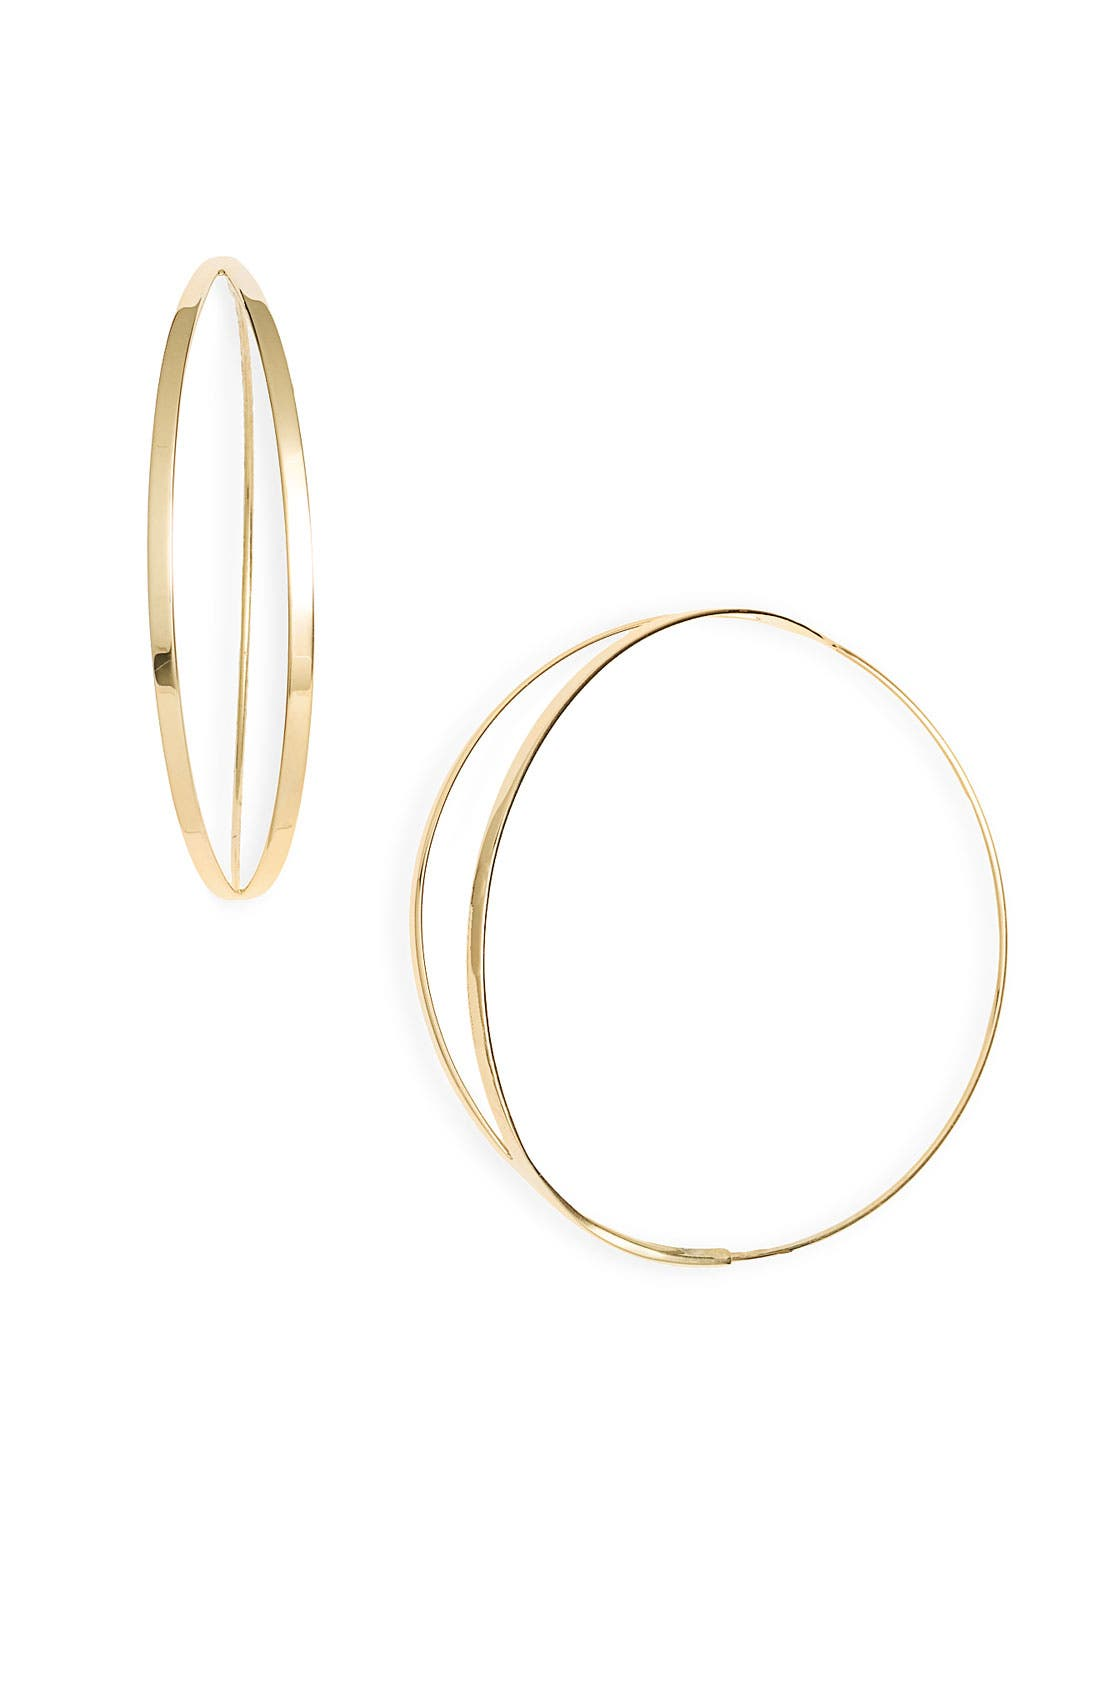 Main Image - Lana Jewelry 'Small Flirt' Hoop Earrings